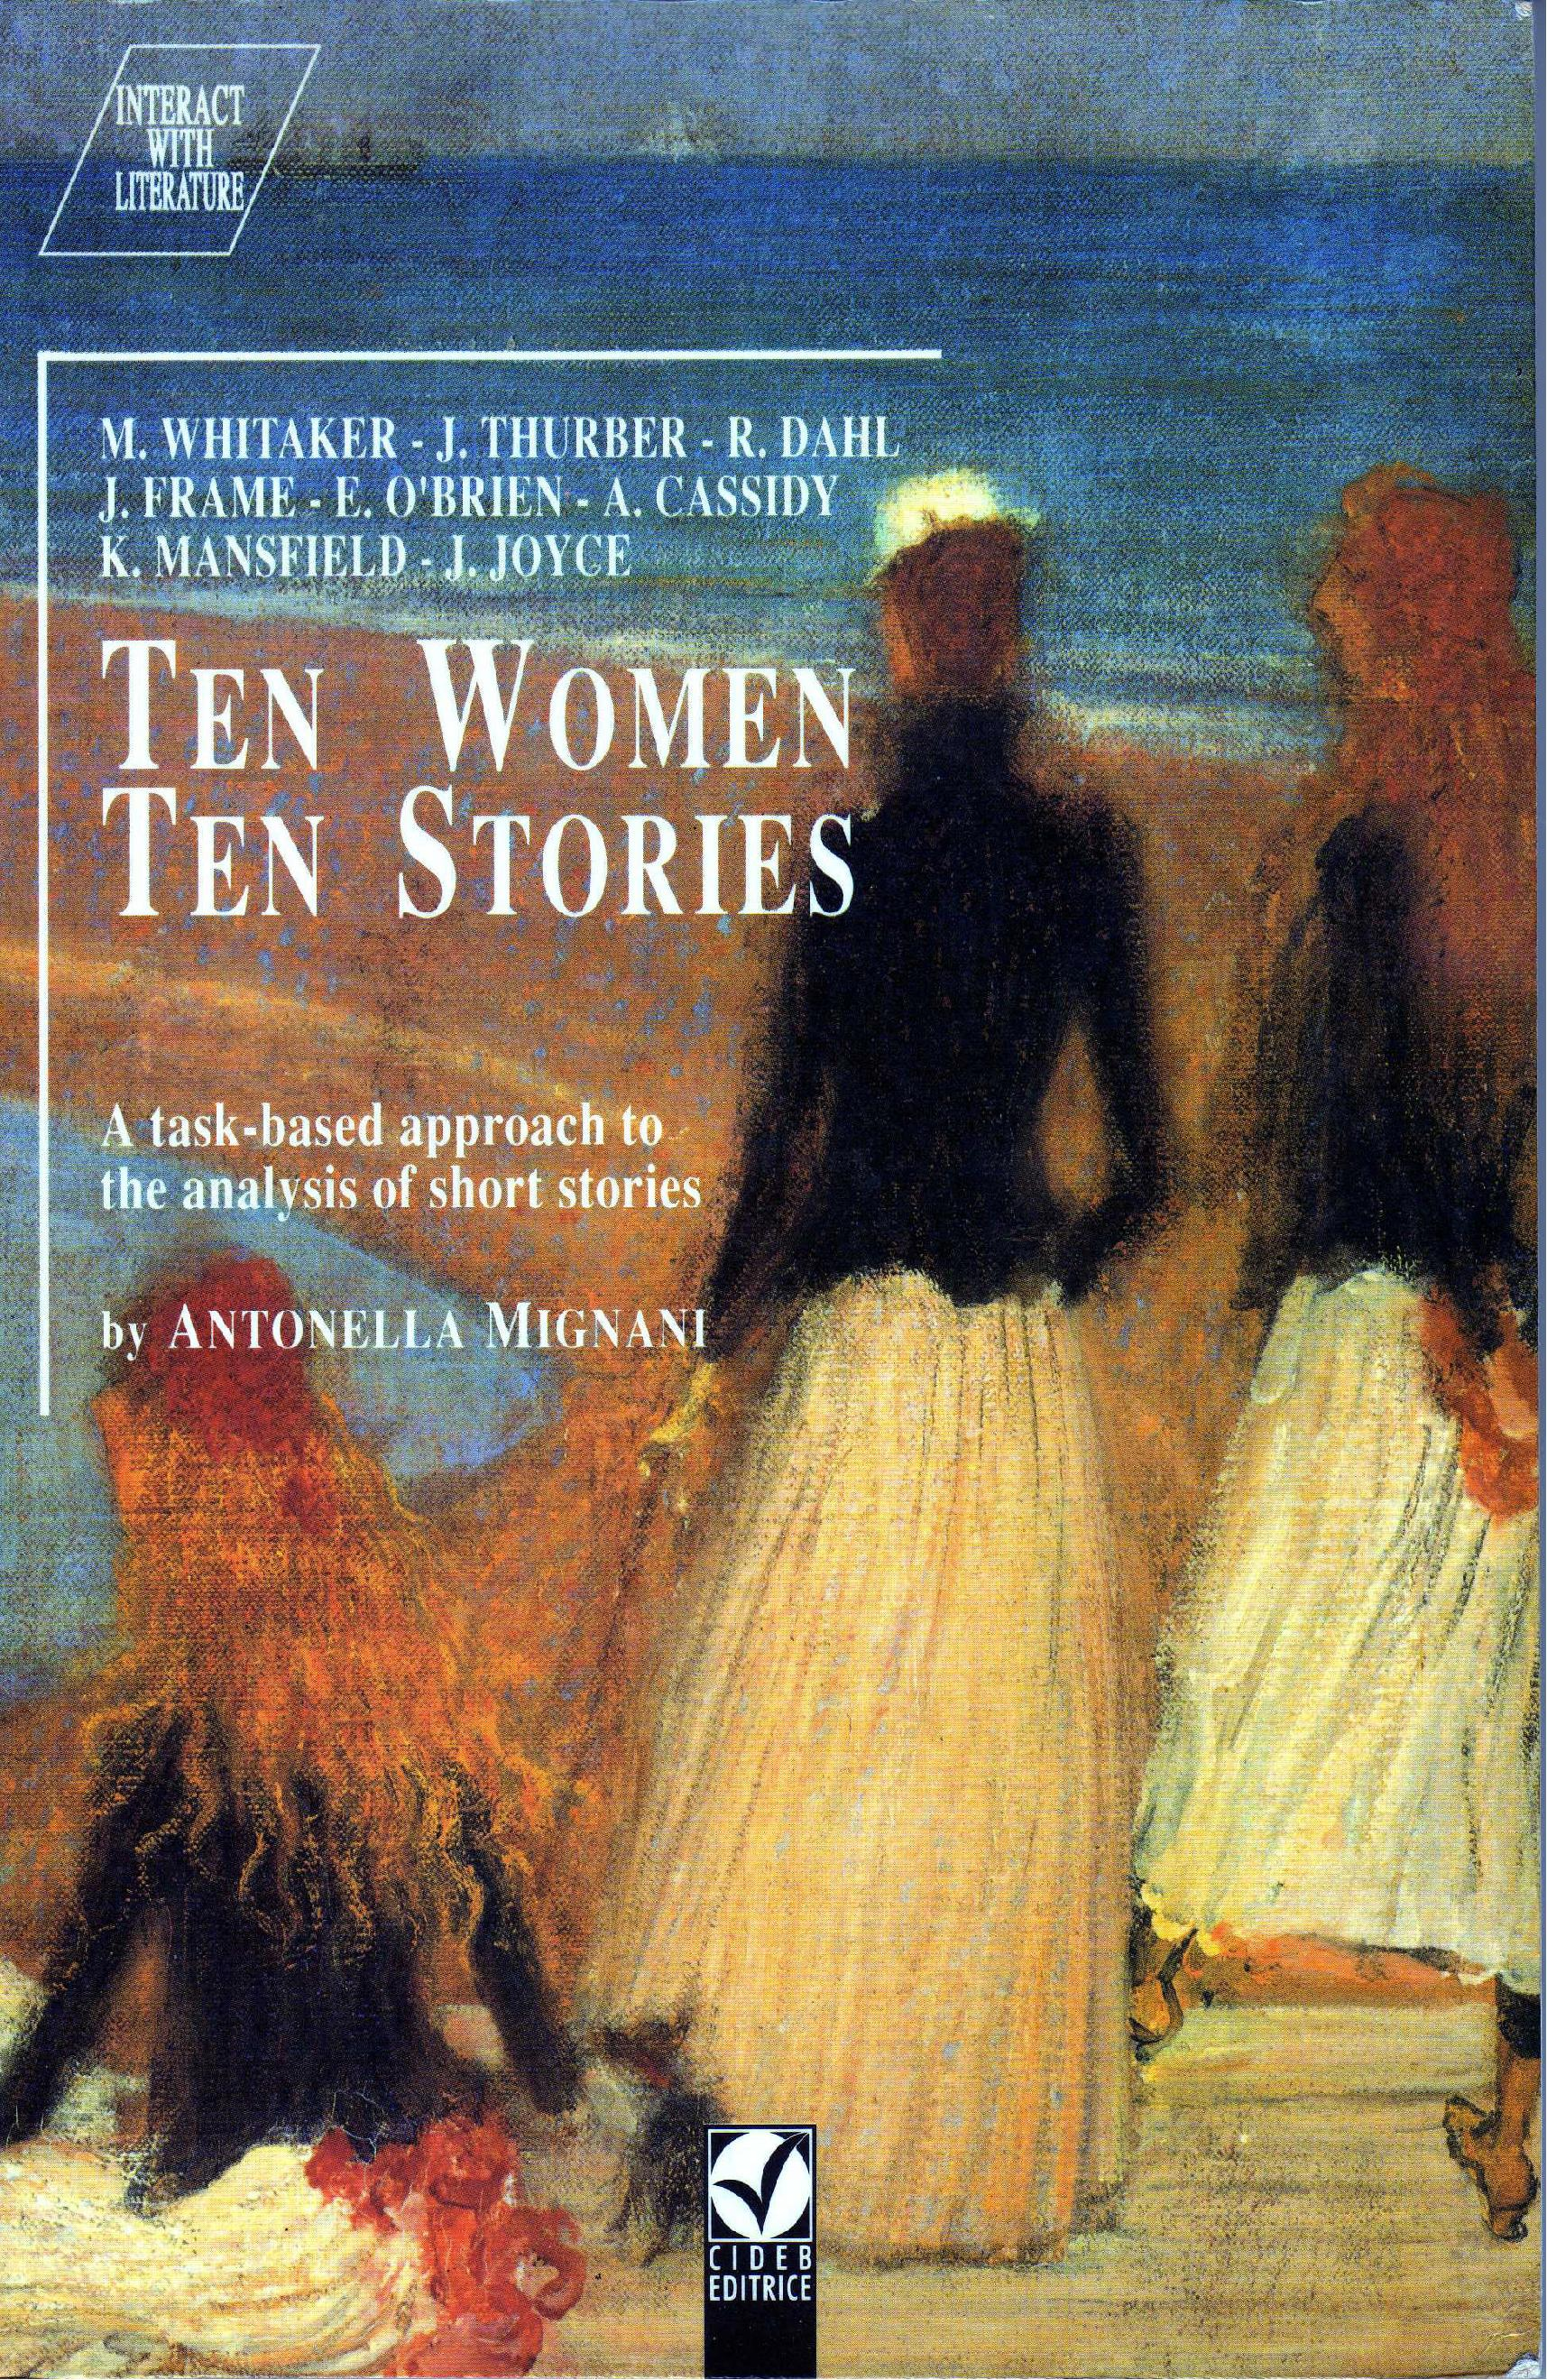 Ten Women Ten Stories